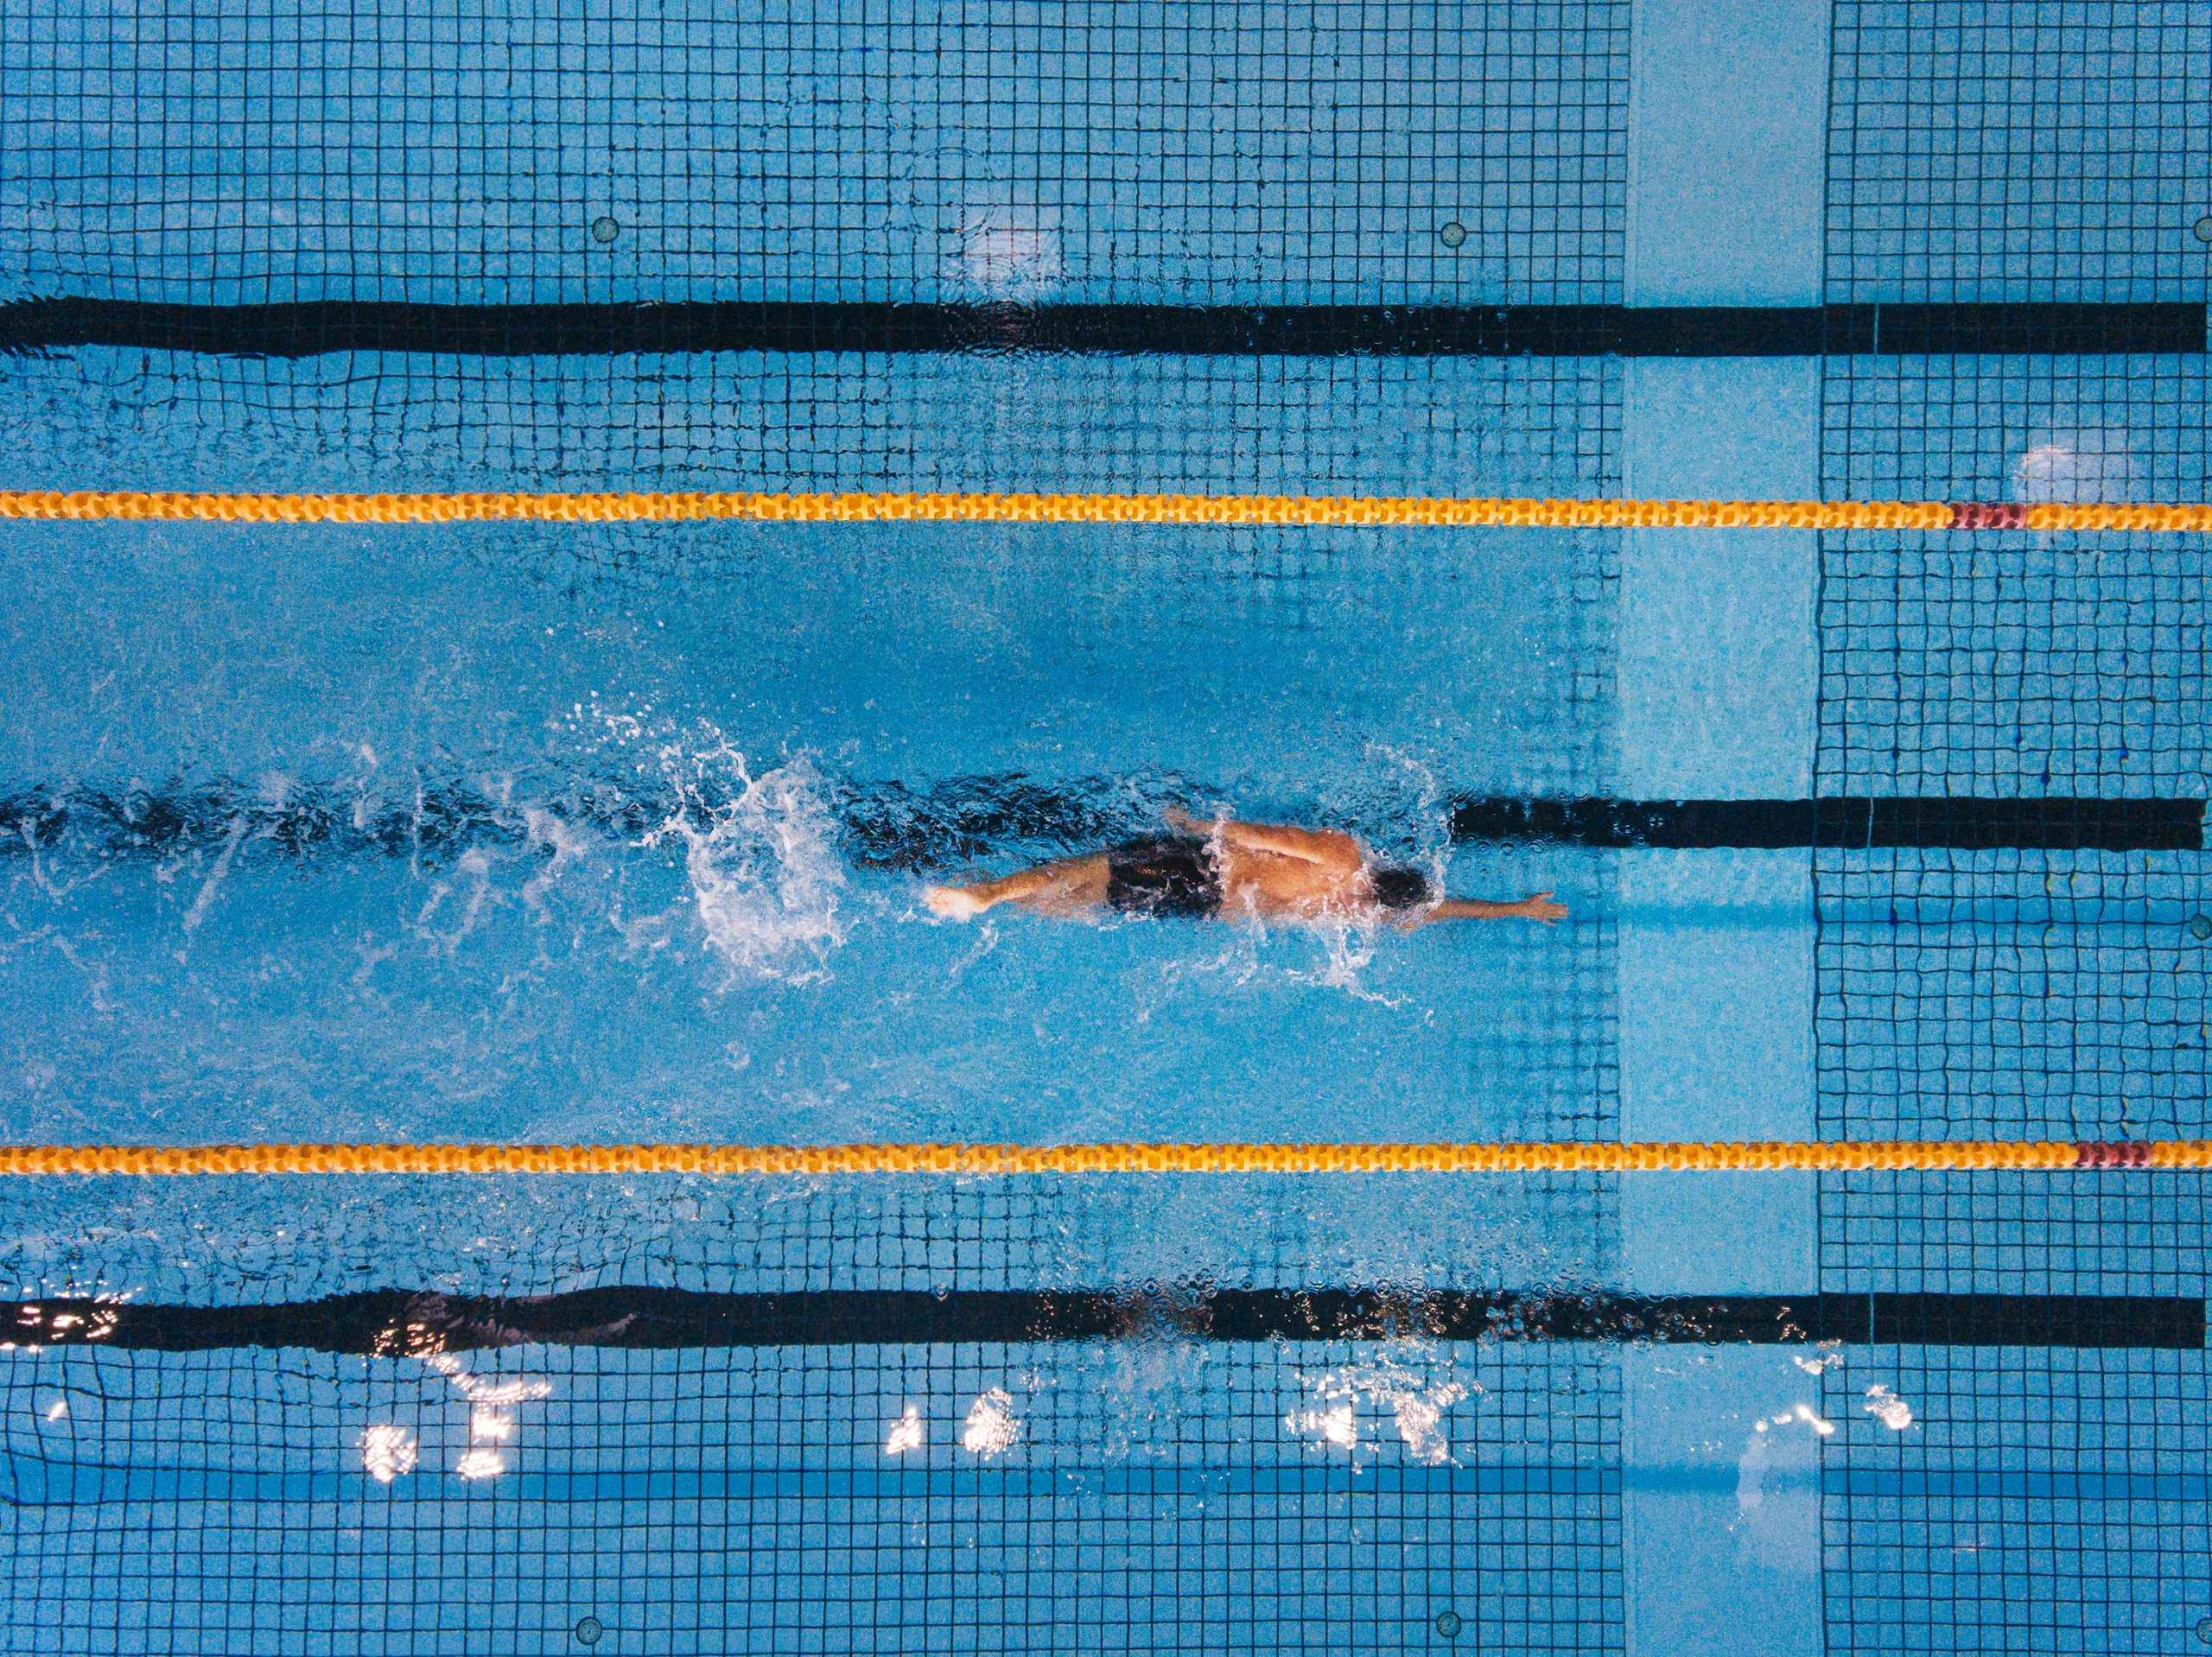 social distancing sports | overhead shot of man swimming laps in pool